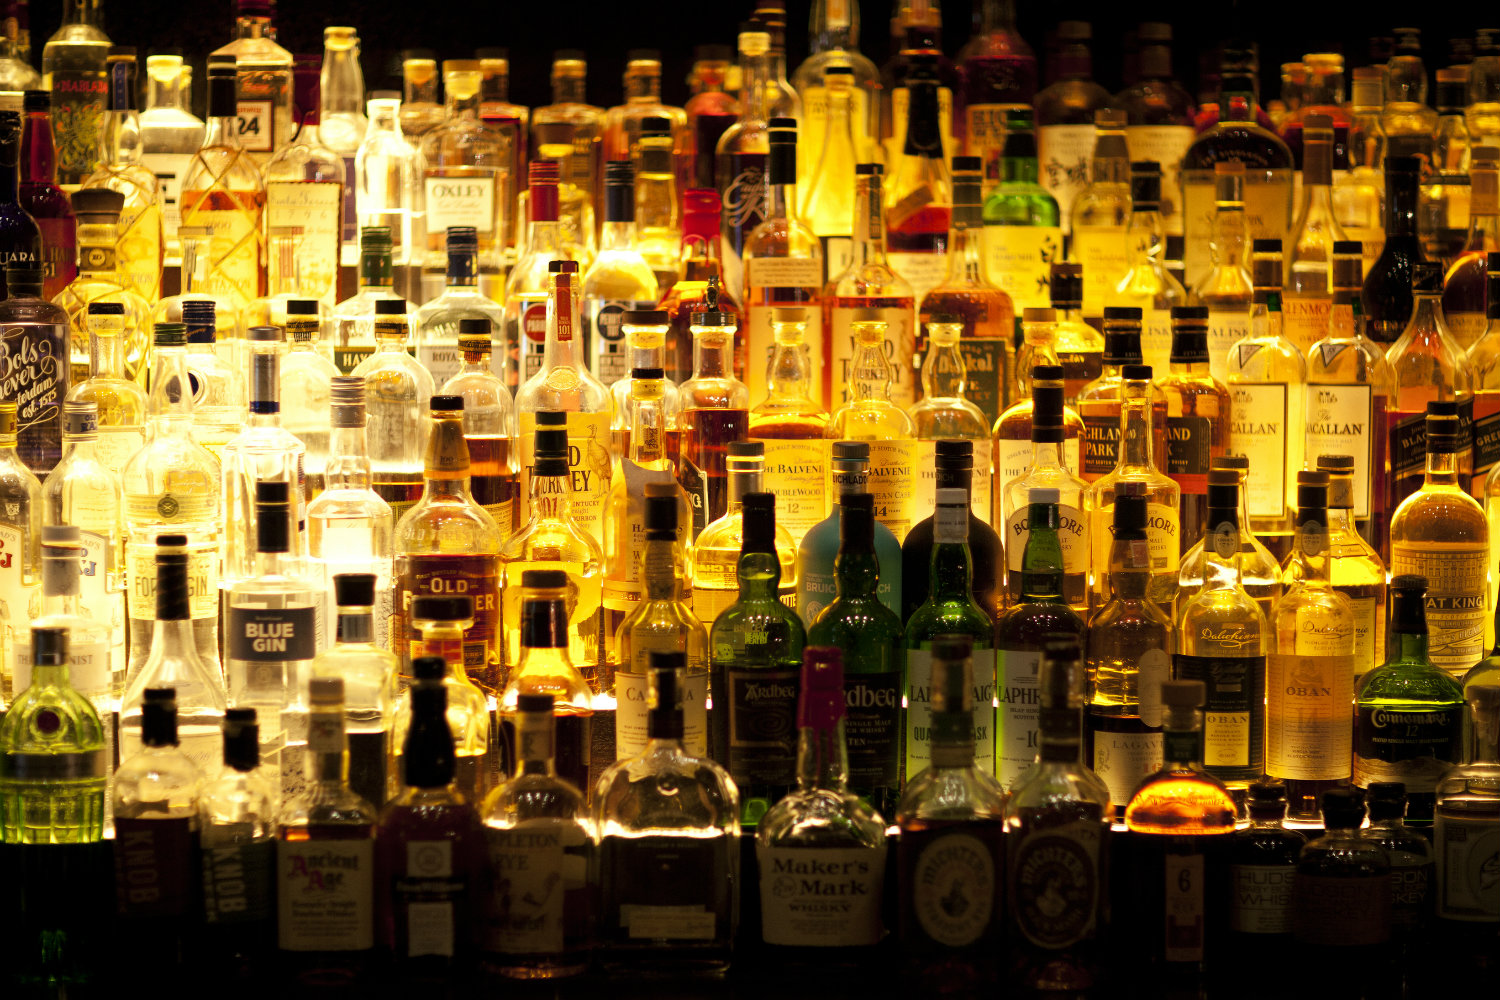 bar-liquor-bottles